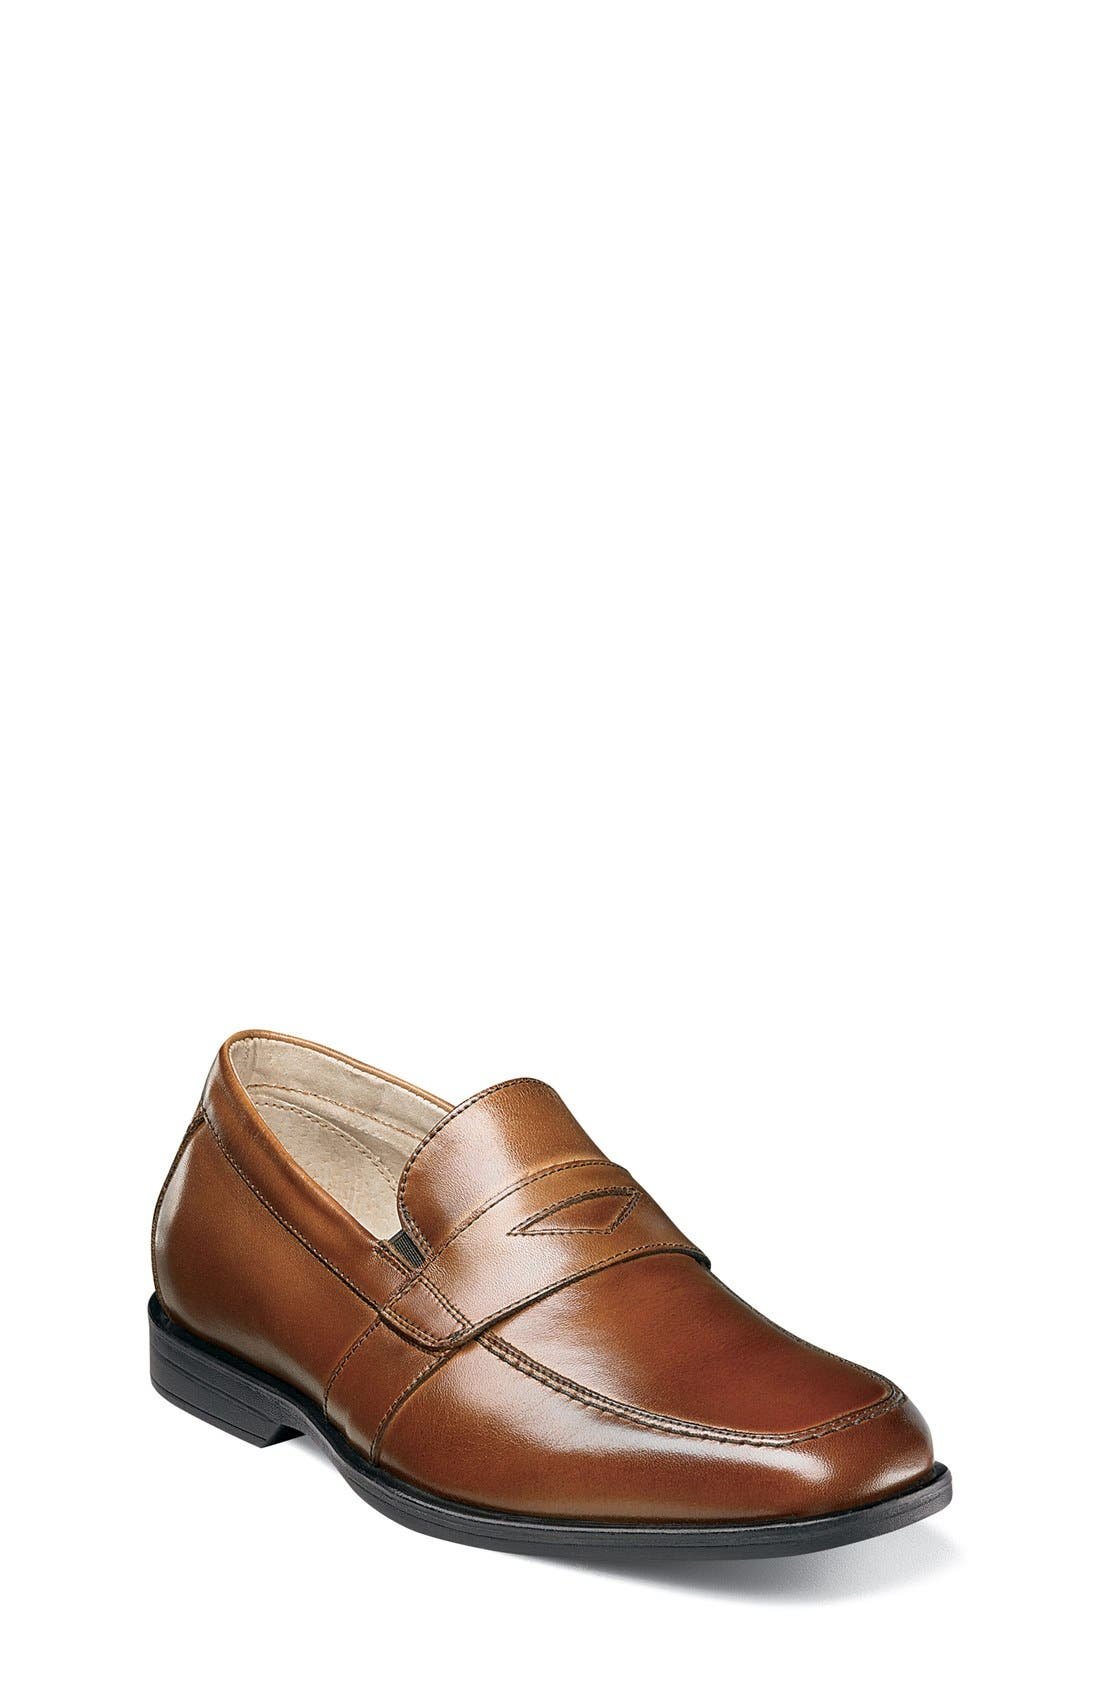 FLORSHEIM Reveal Penny Loafer